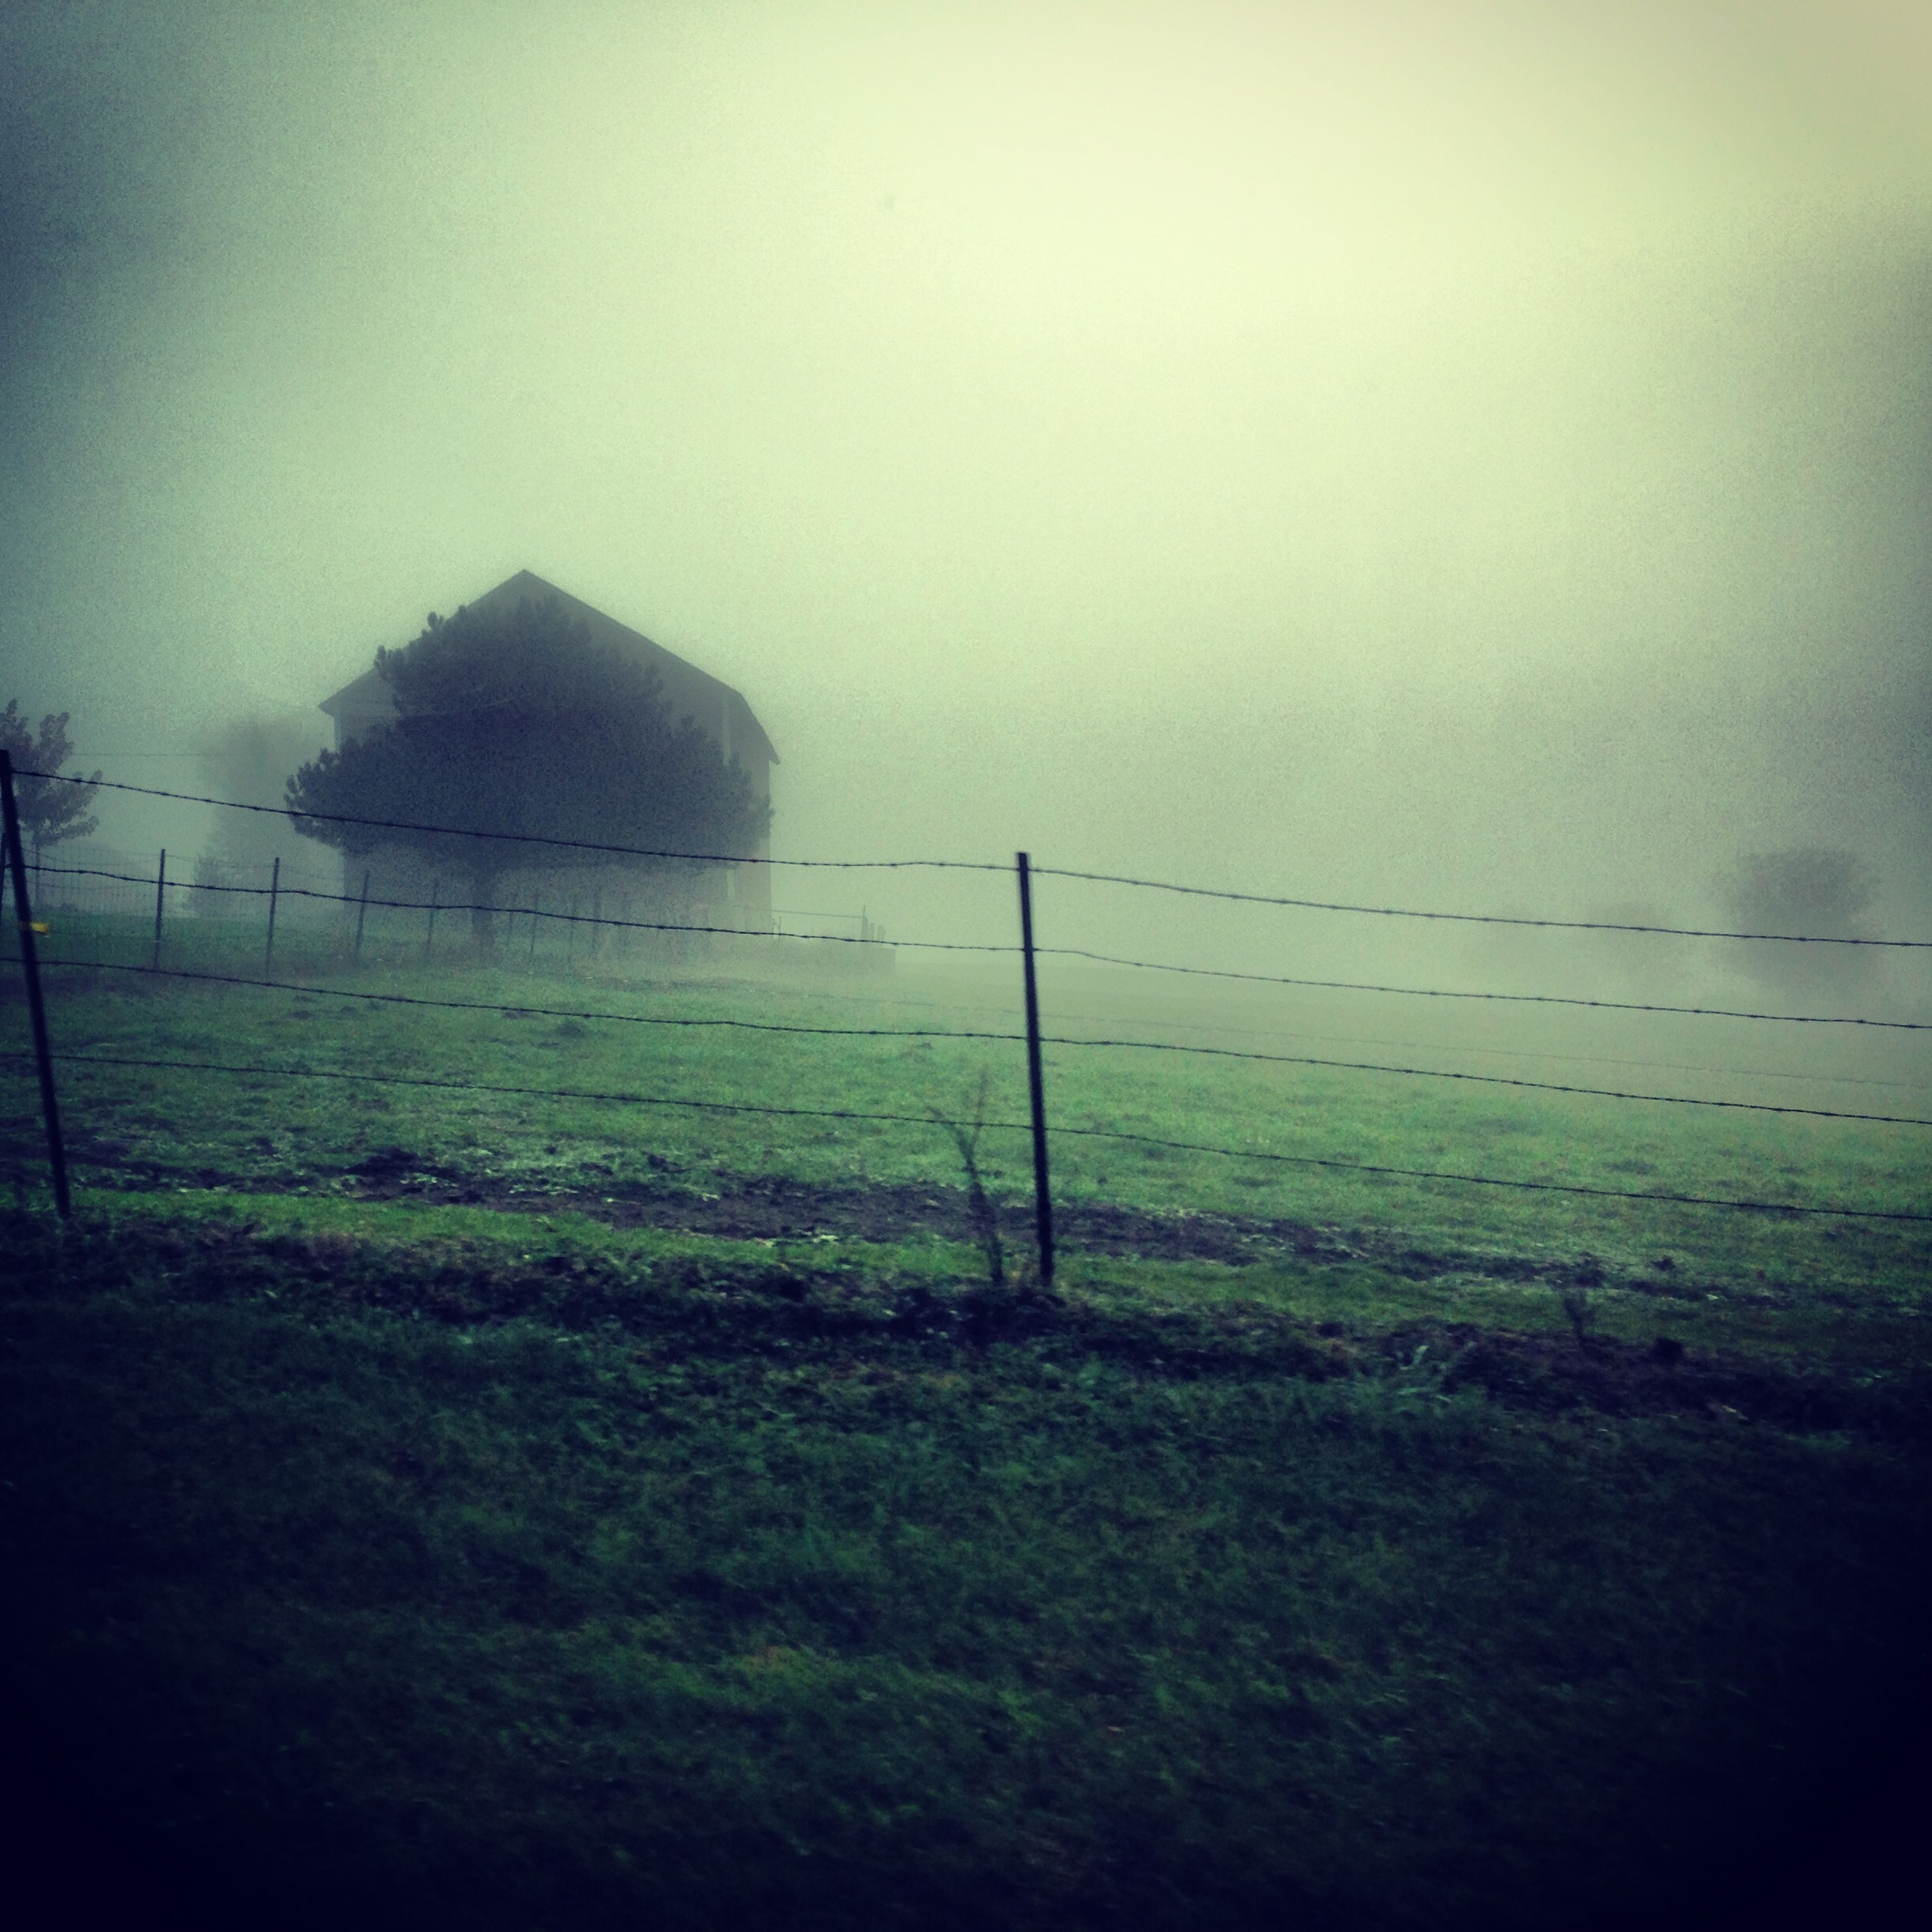 tranquility, tranquil scene, grass, landscape, scenics, nature, fence, fog, field, beauty in nature, sky, non-urban scene, protection, plant, foggy, copy space, outdoors, remote, grassy